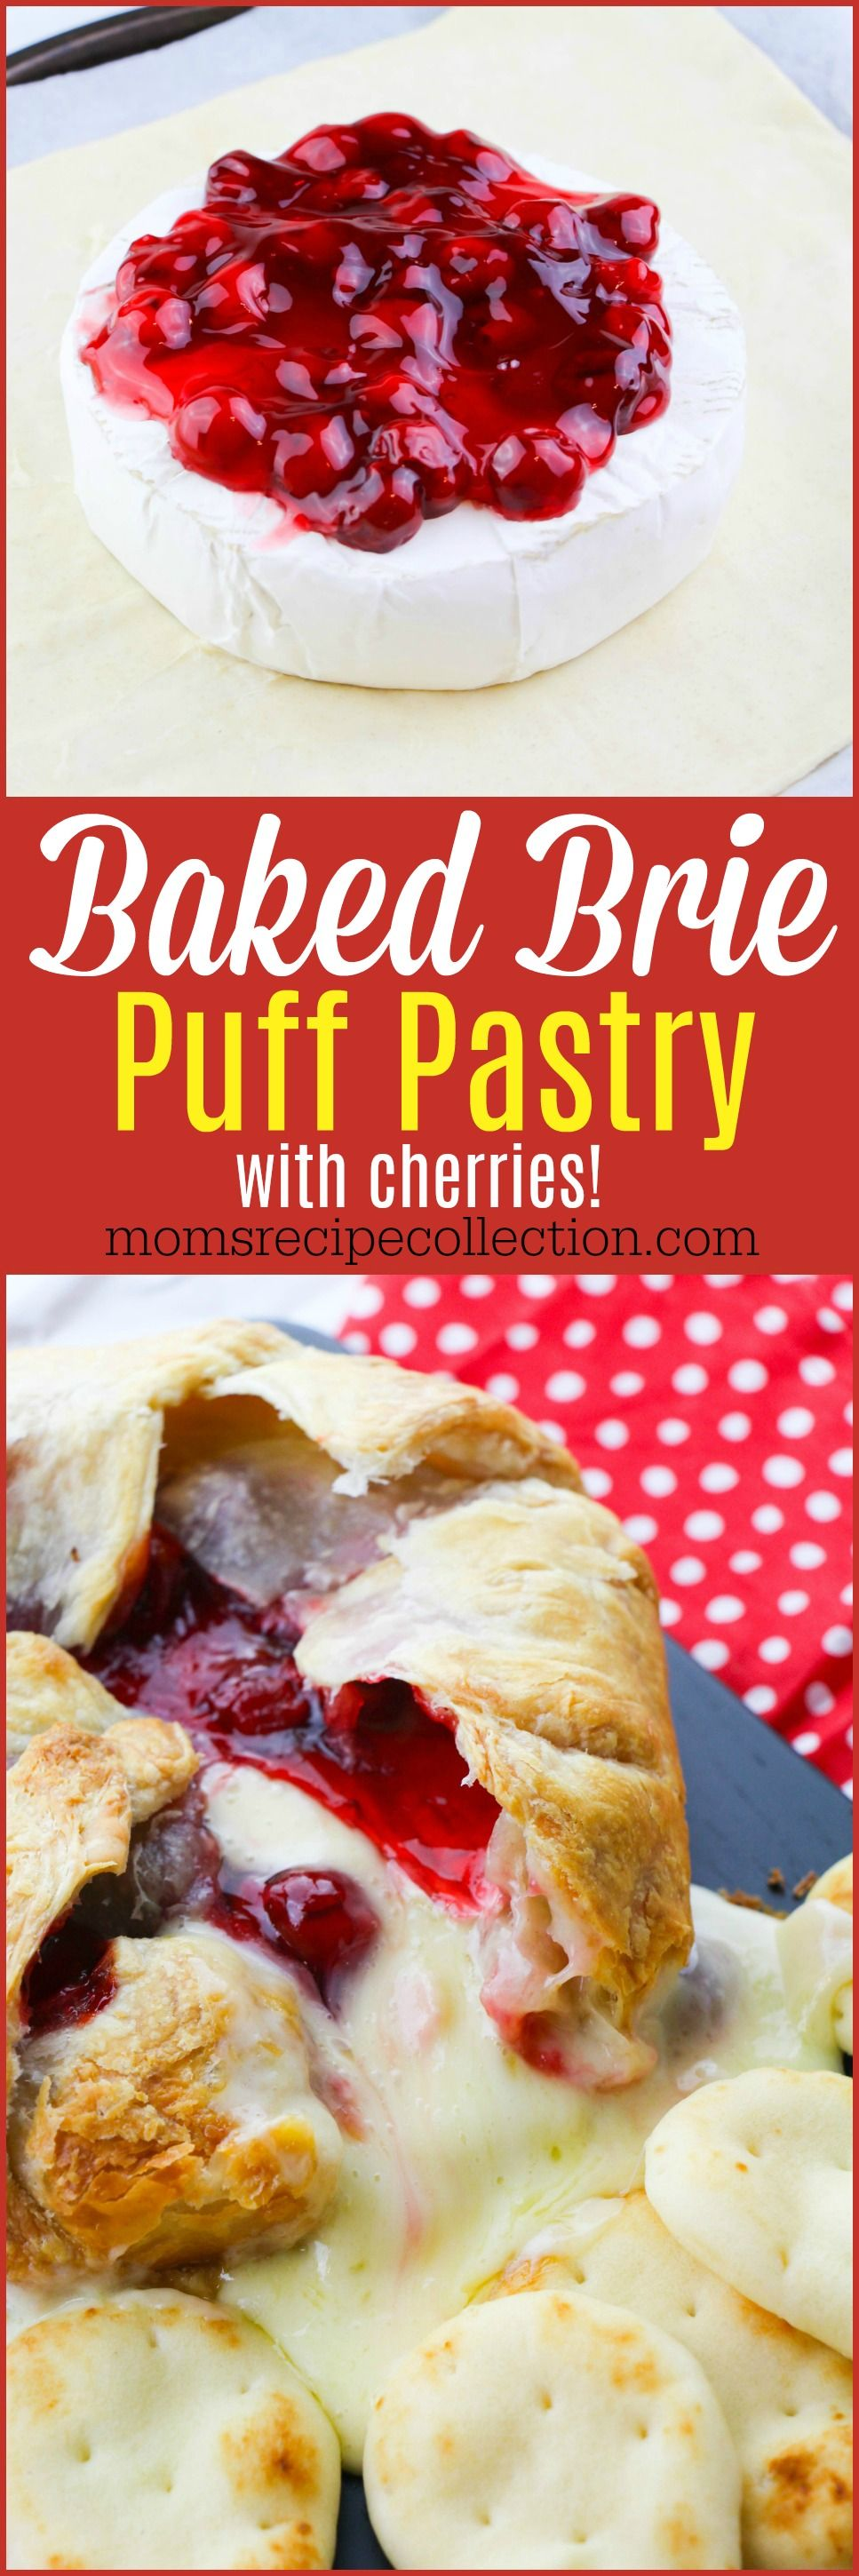 Find the recipe for Baked Brie Puff Pastry with Cherries on Pinterest and pin it! Yum. #recipeforpuffpastry